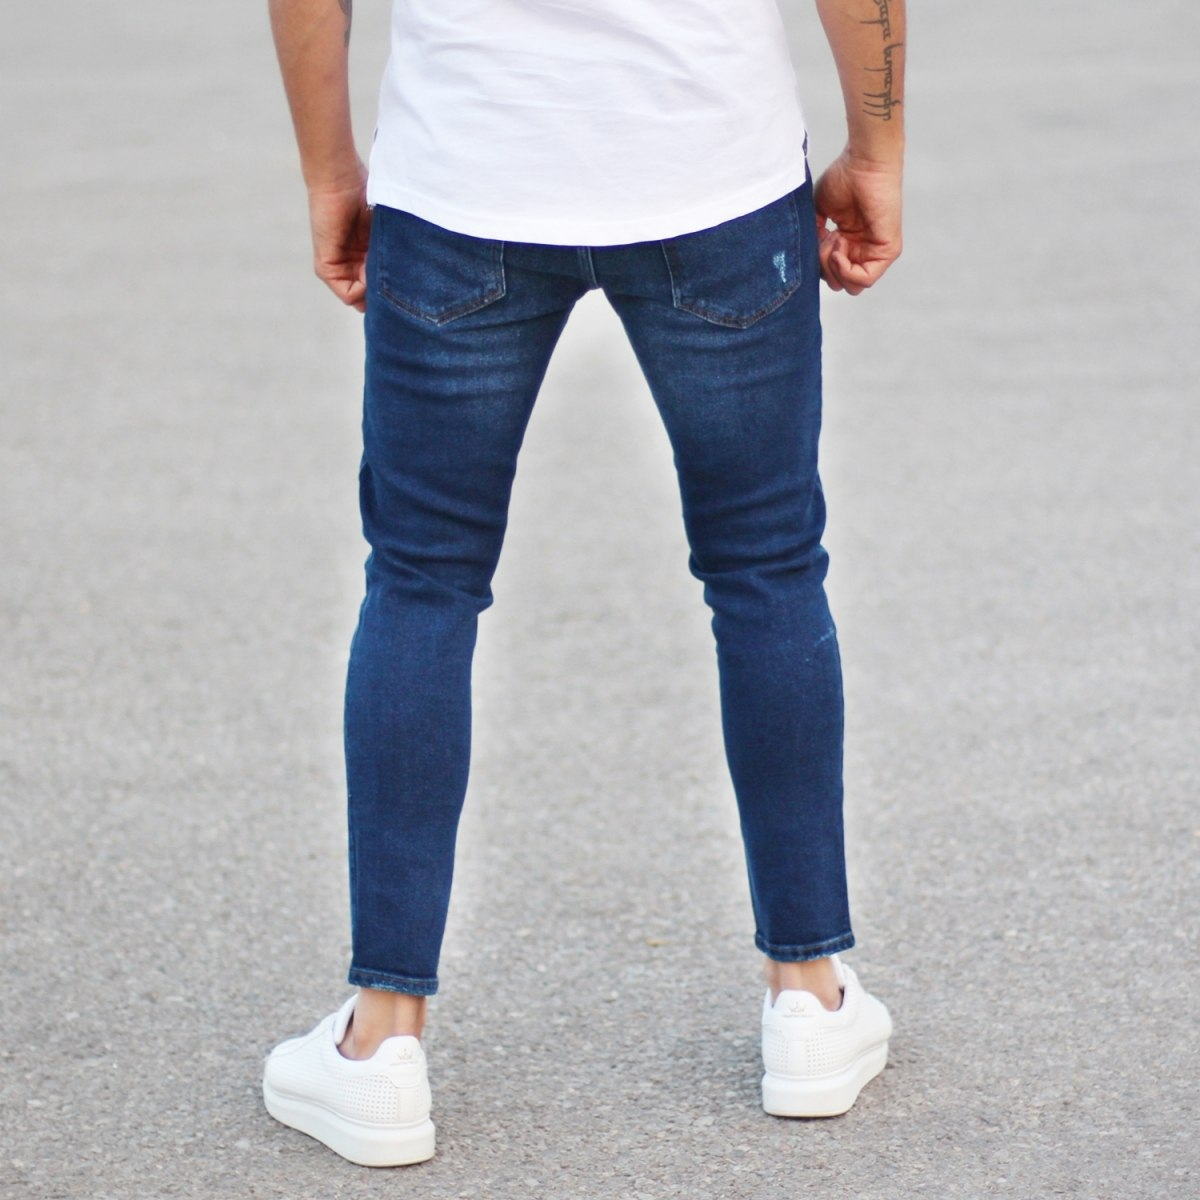 Men's Fashion Jeans With...